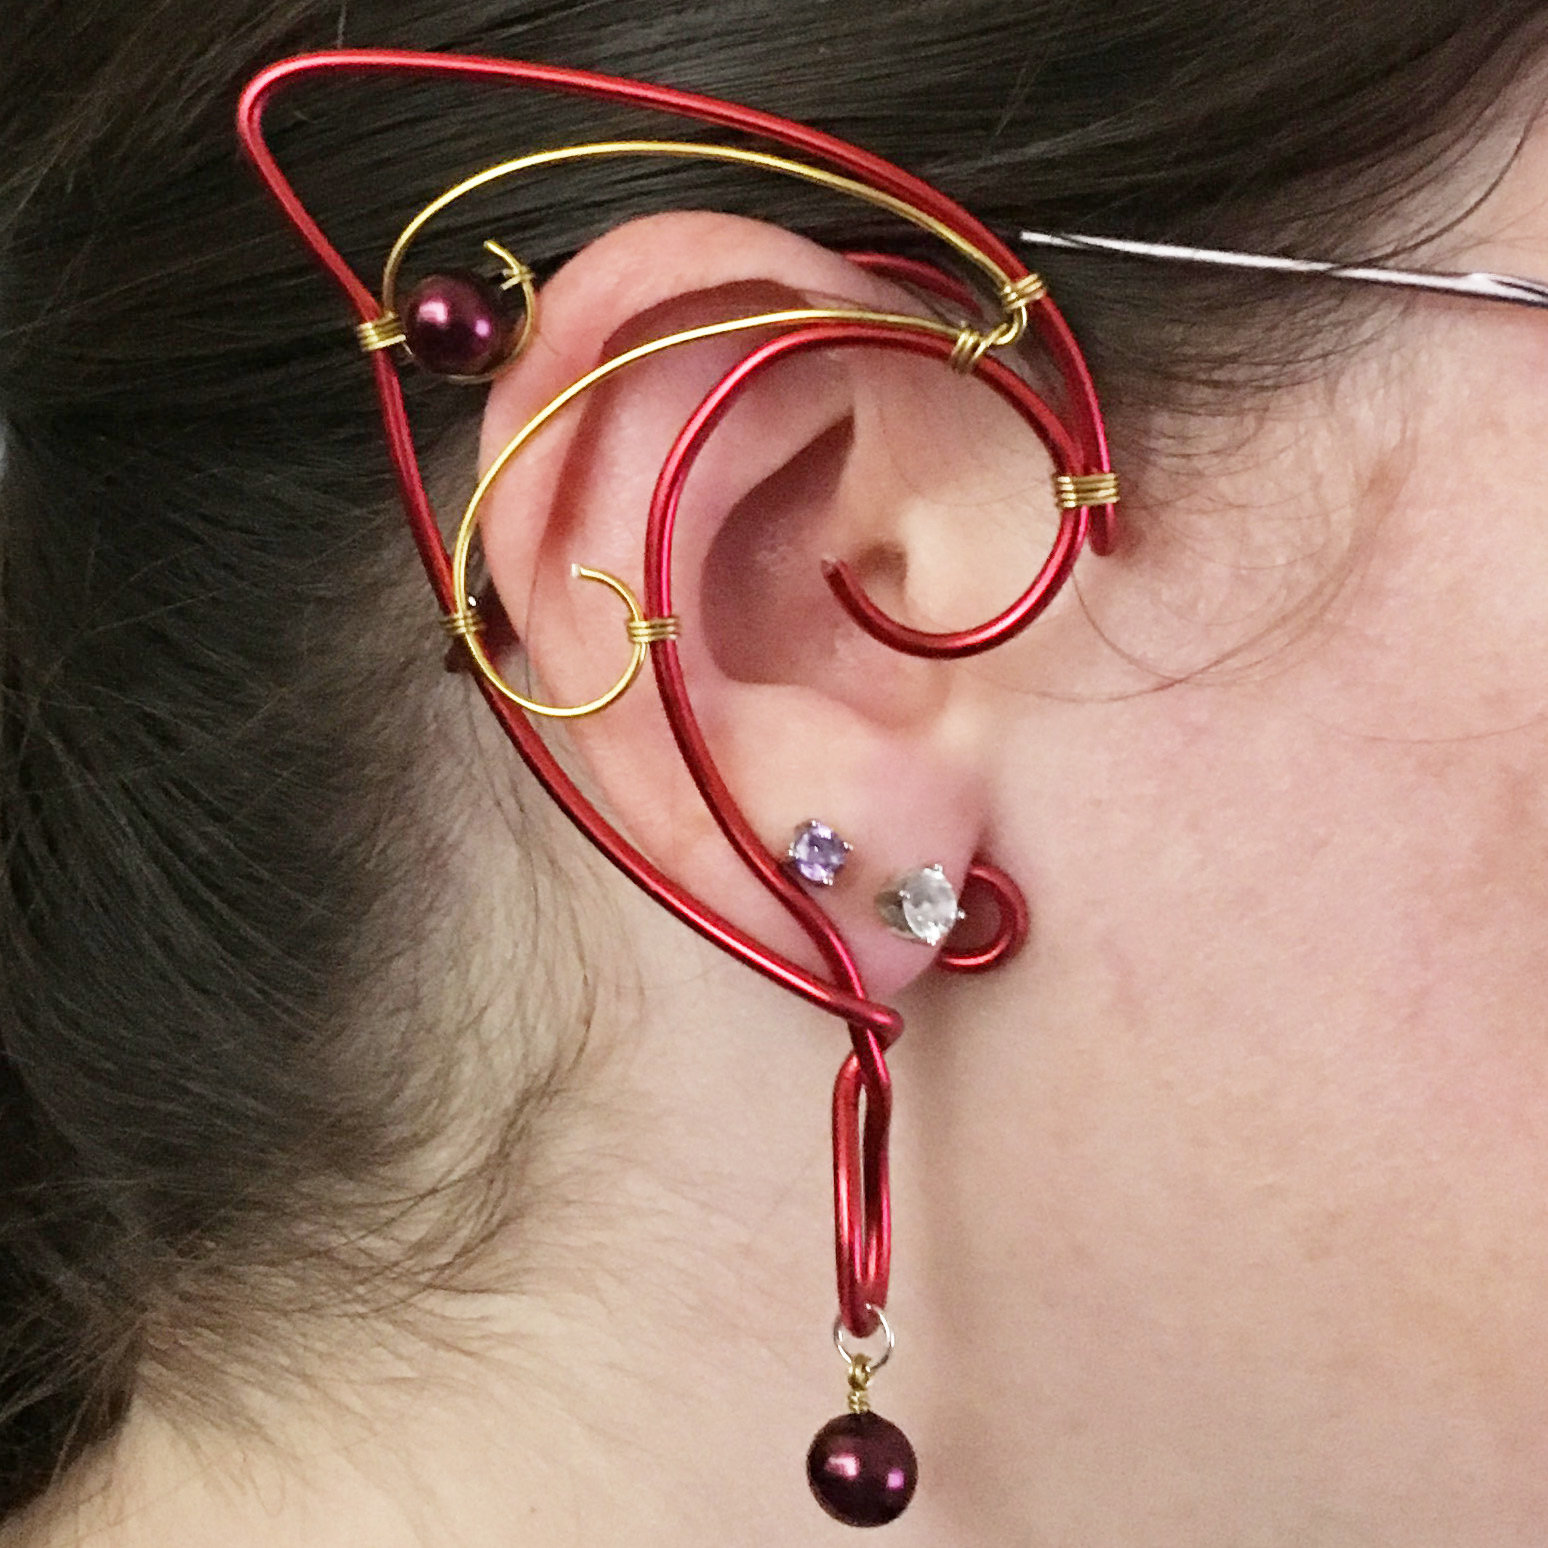 Elf Ear Cuff - Red and gold with beads EC004